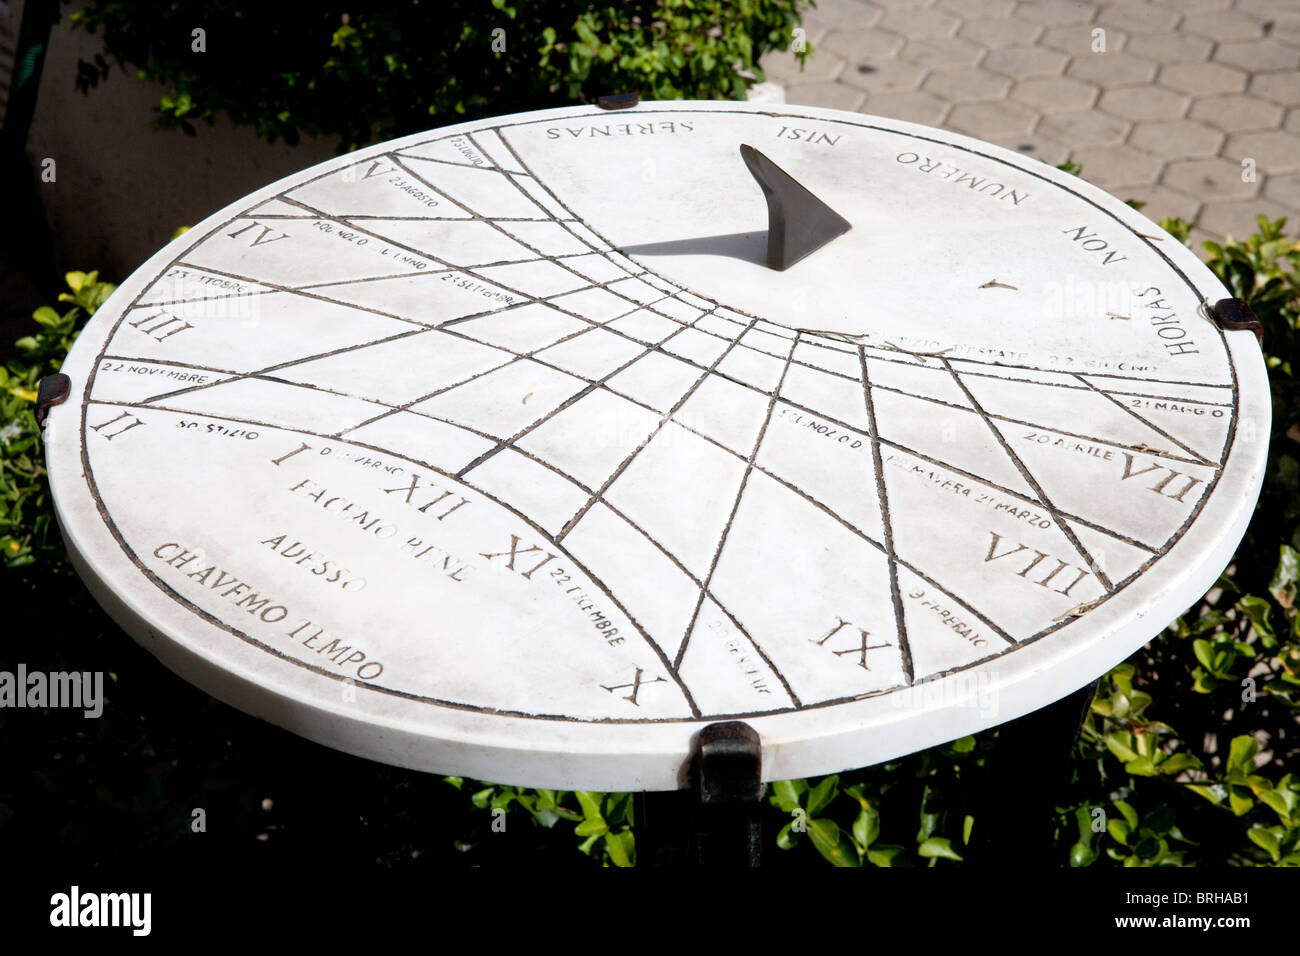 dial sundial sun measurement Latin Italy old time - Stock Image